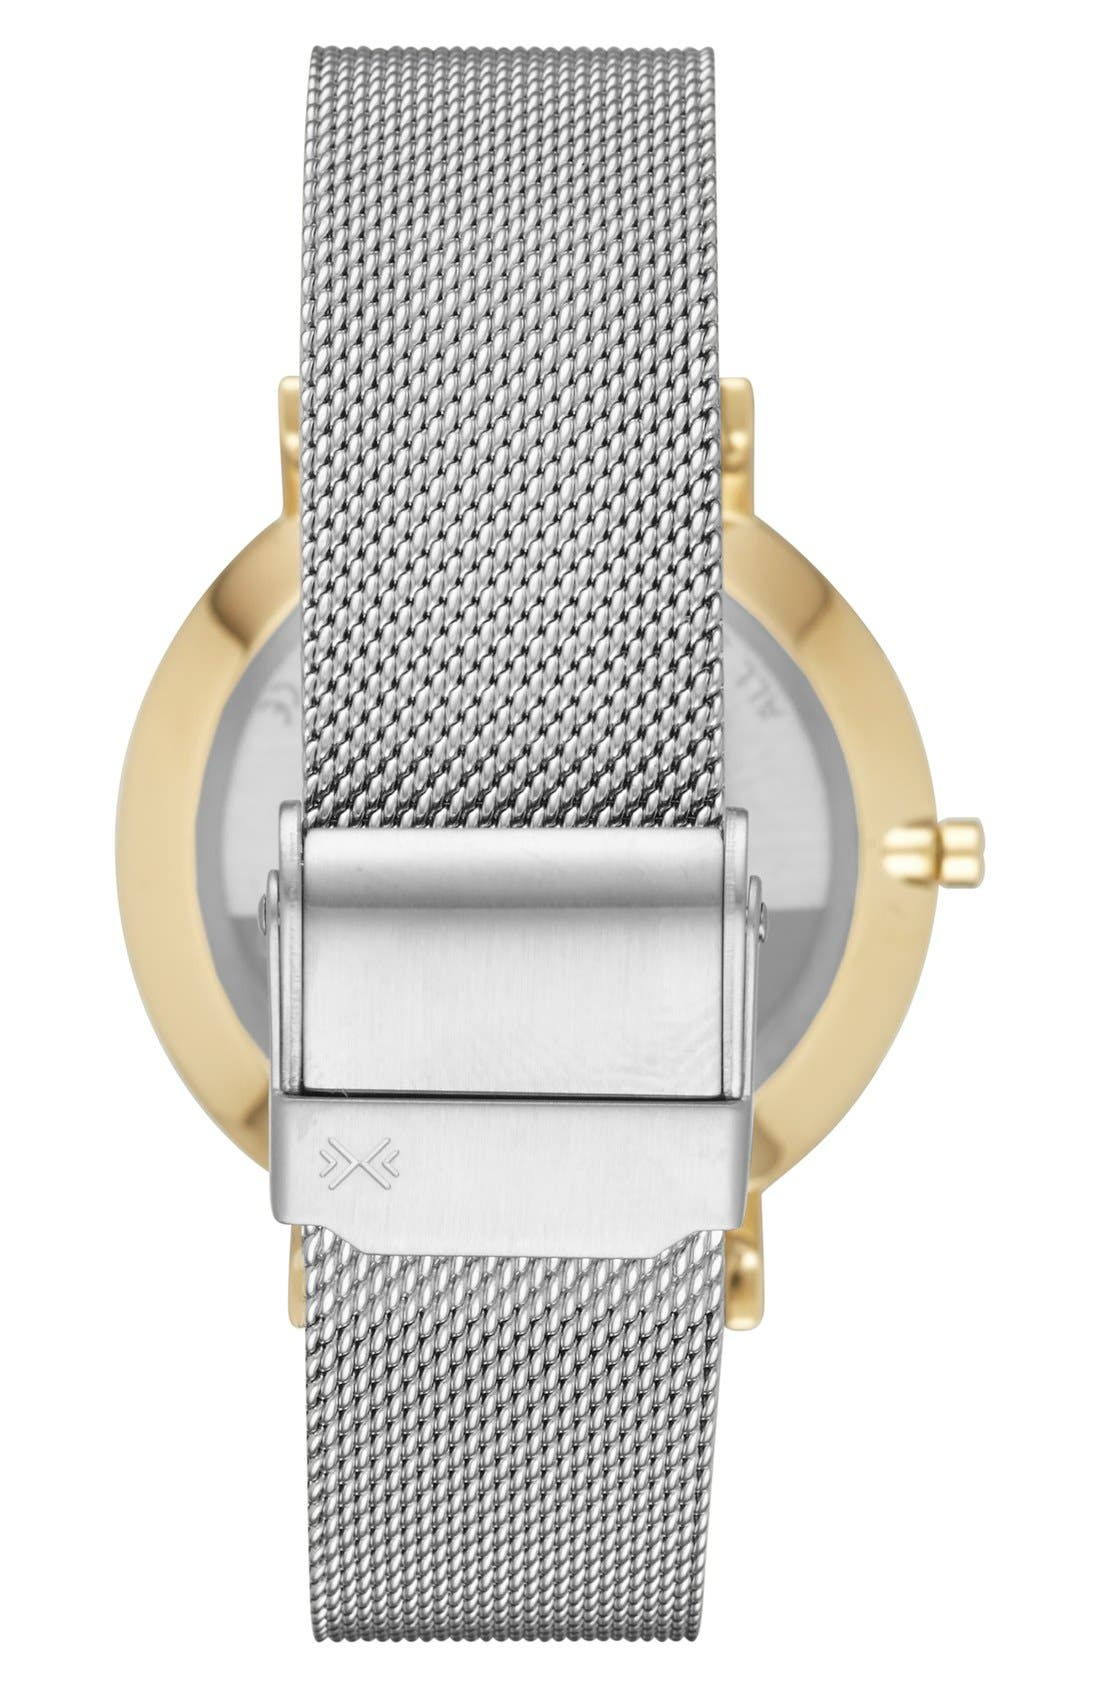 'Hald' Round Mesh Strap Watch, 34mm,                             Alternate thumbnail 3, color,